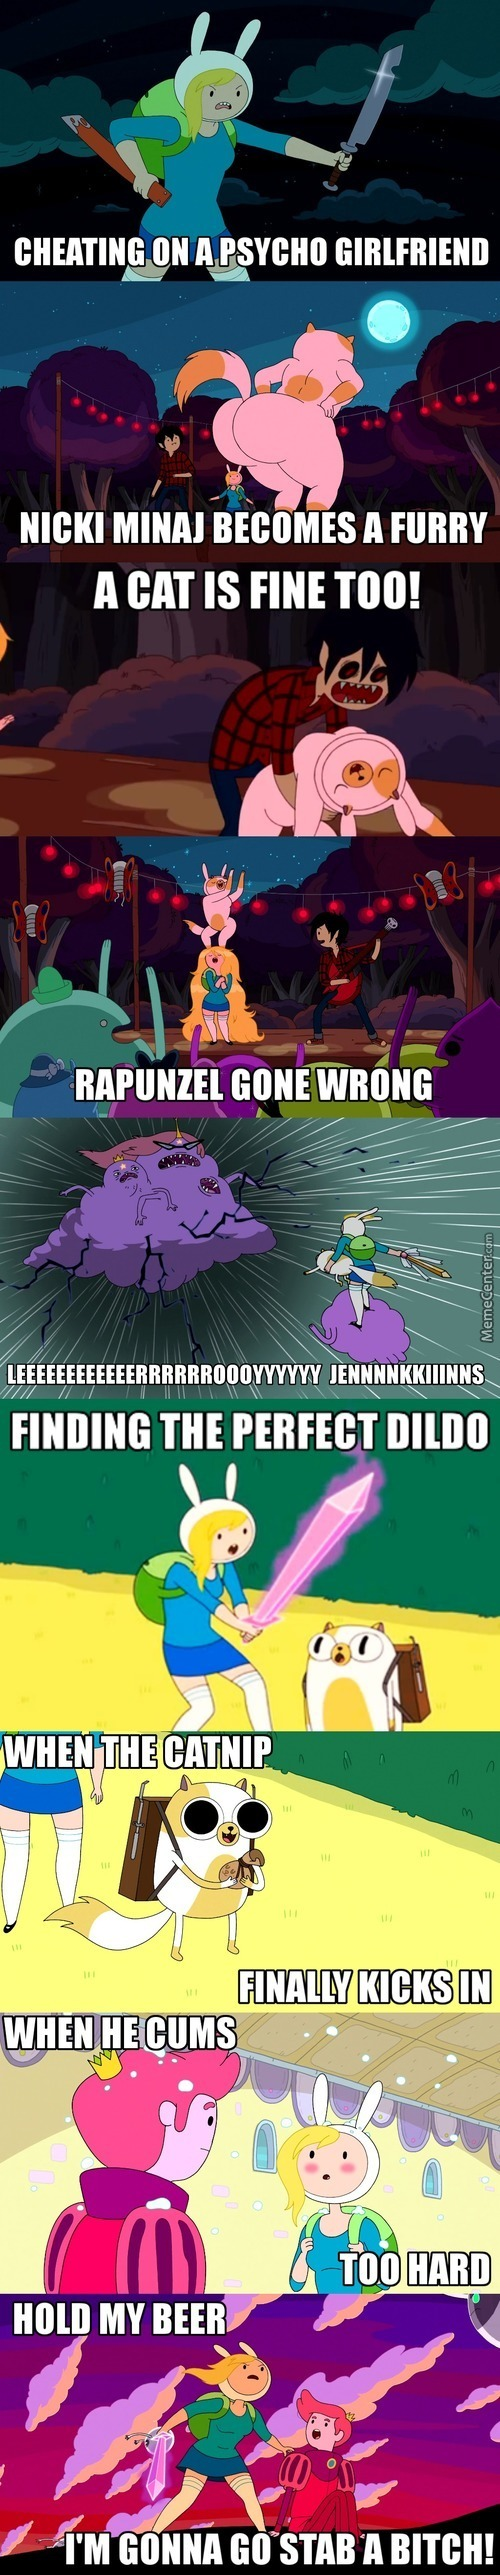 Adventure Time Captioned Images 3-Fionna And Cake Edition